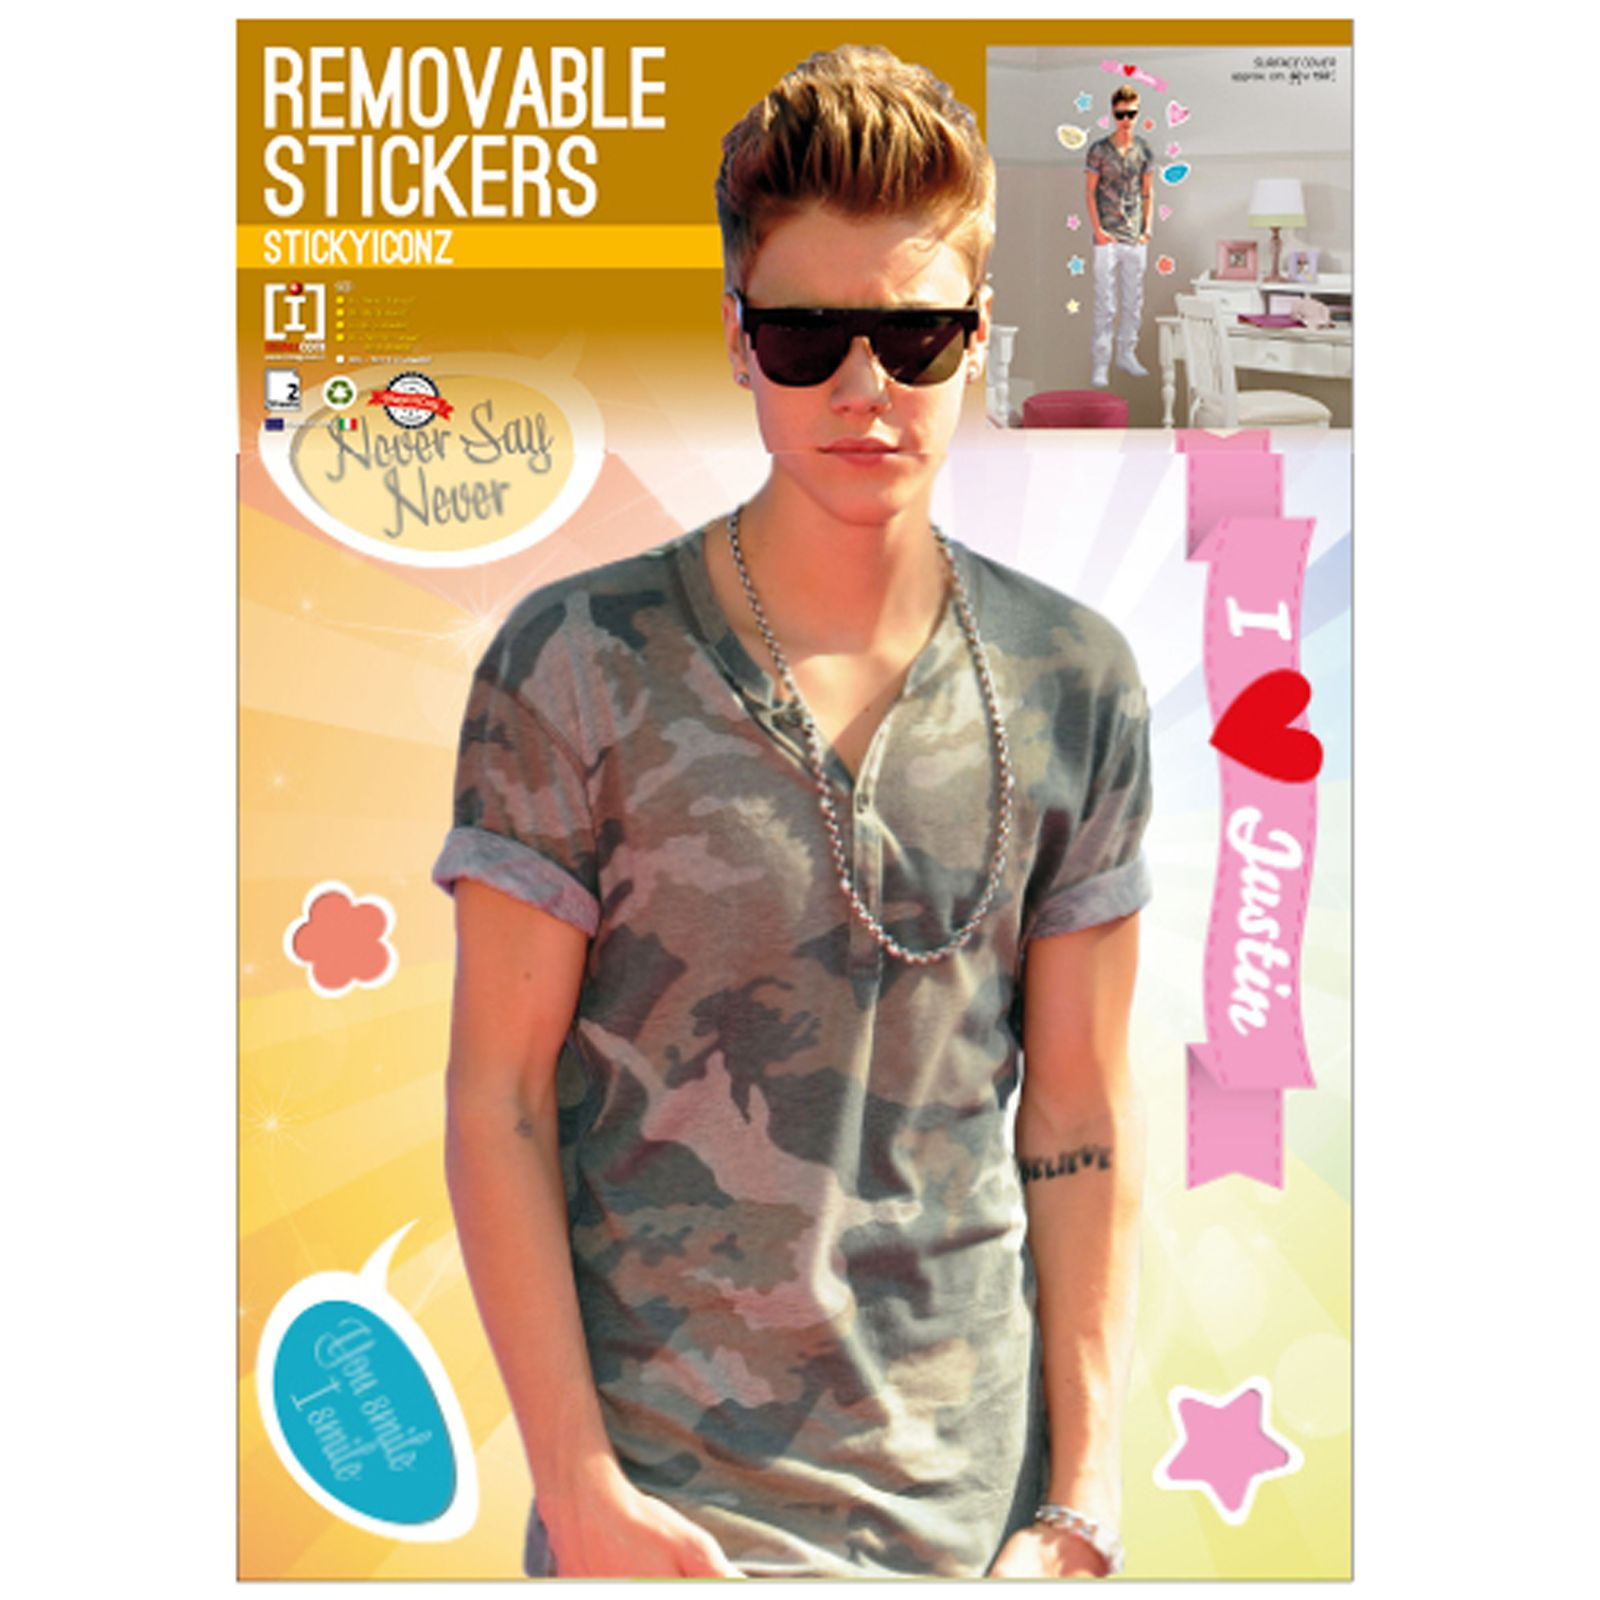 Baby Bedroom Decor Justin Bieber Bedroom Wallpaper Bedroom Design Bed Bedroom Design Modern Classic: Justin Bieber X Large Wall Stickers NEW Room Decor Kids